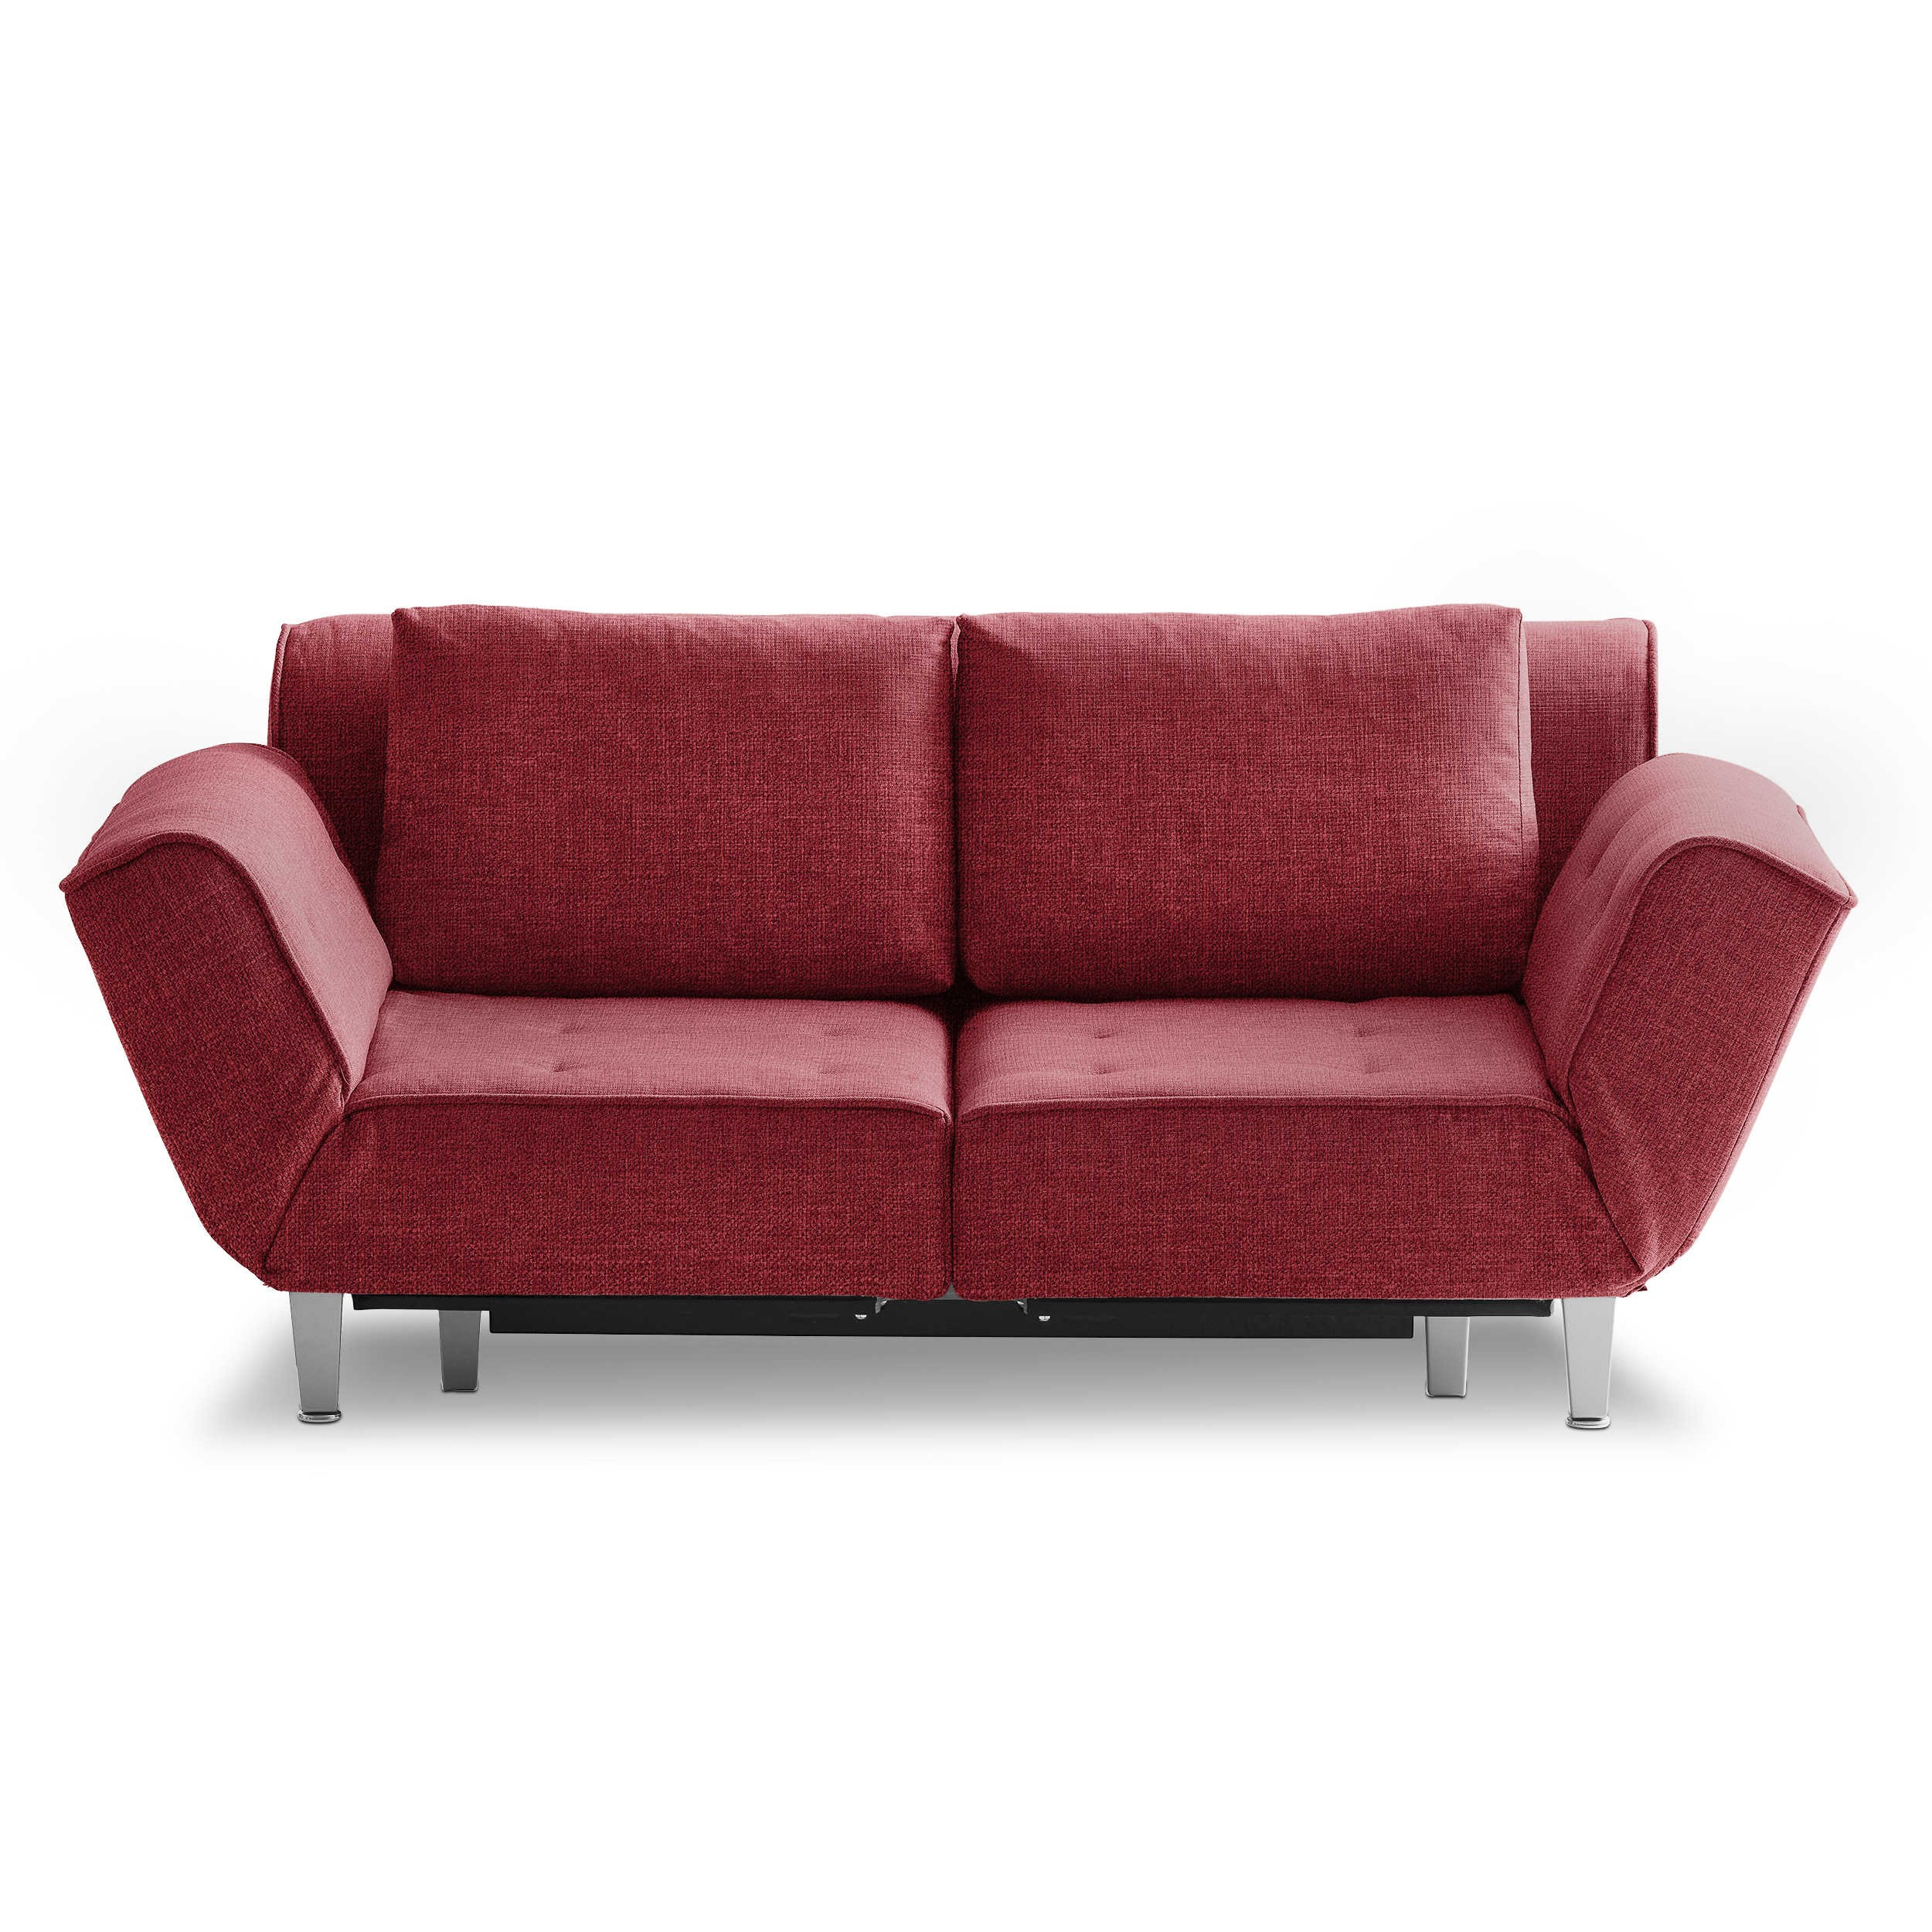 franz fertig schlafsofa joss rot stoff online kaufen bei woonio. Black Bedroom Furniture Sets. Home Design Ideas